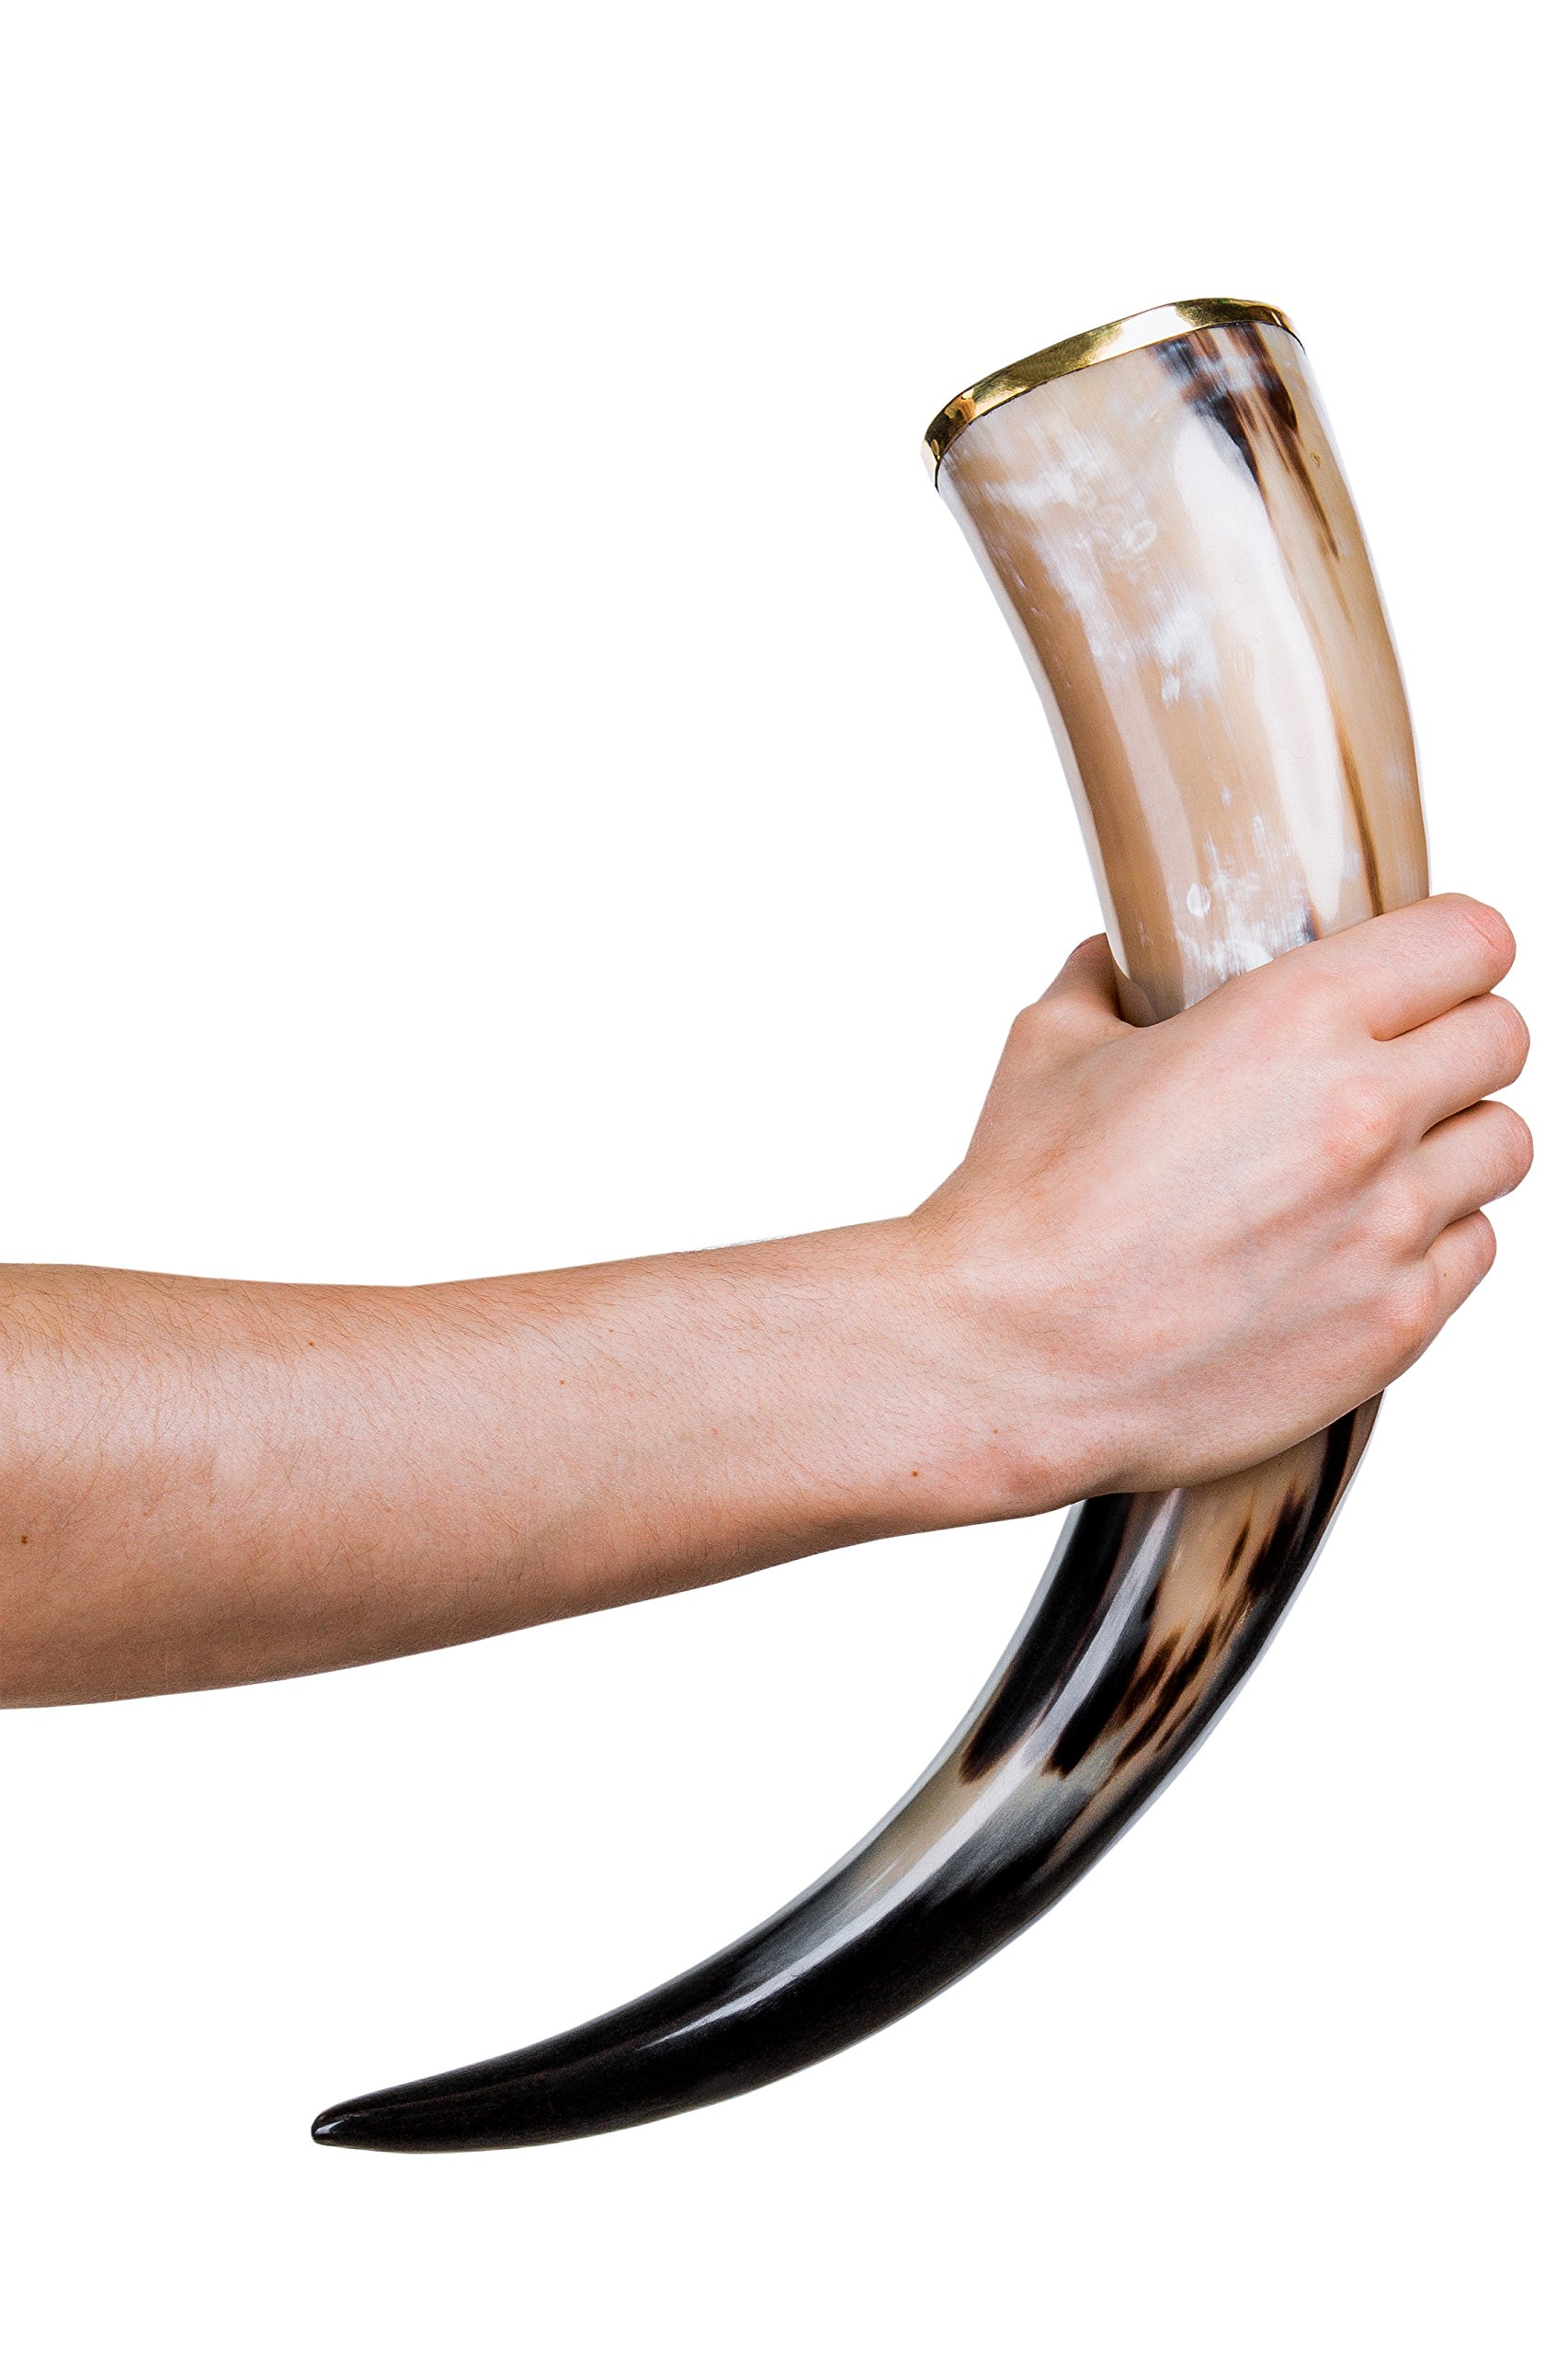 Thor Horn Large Viking Drinking Horn with Metal Stand – Genuine Handcrafted Viking Horn Cup for Mead, Ale and Beer…